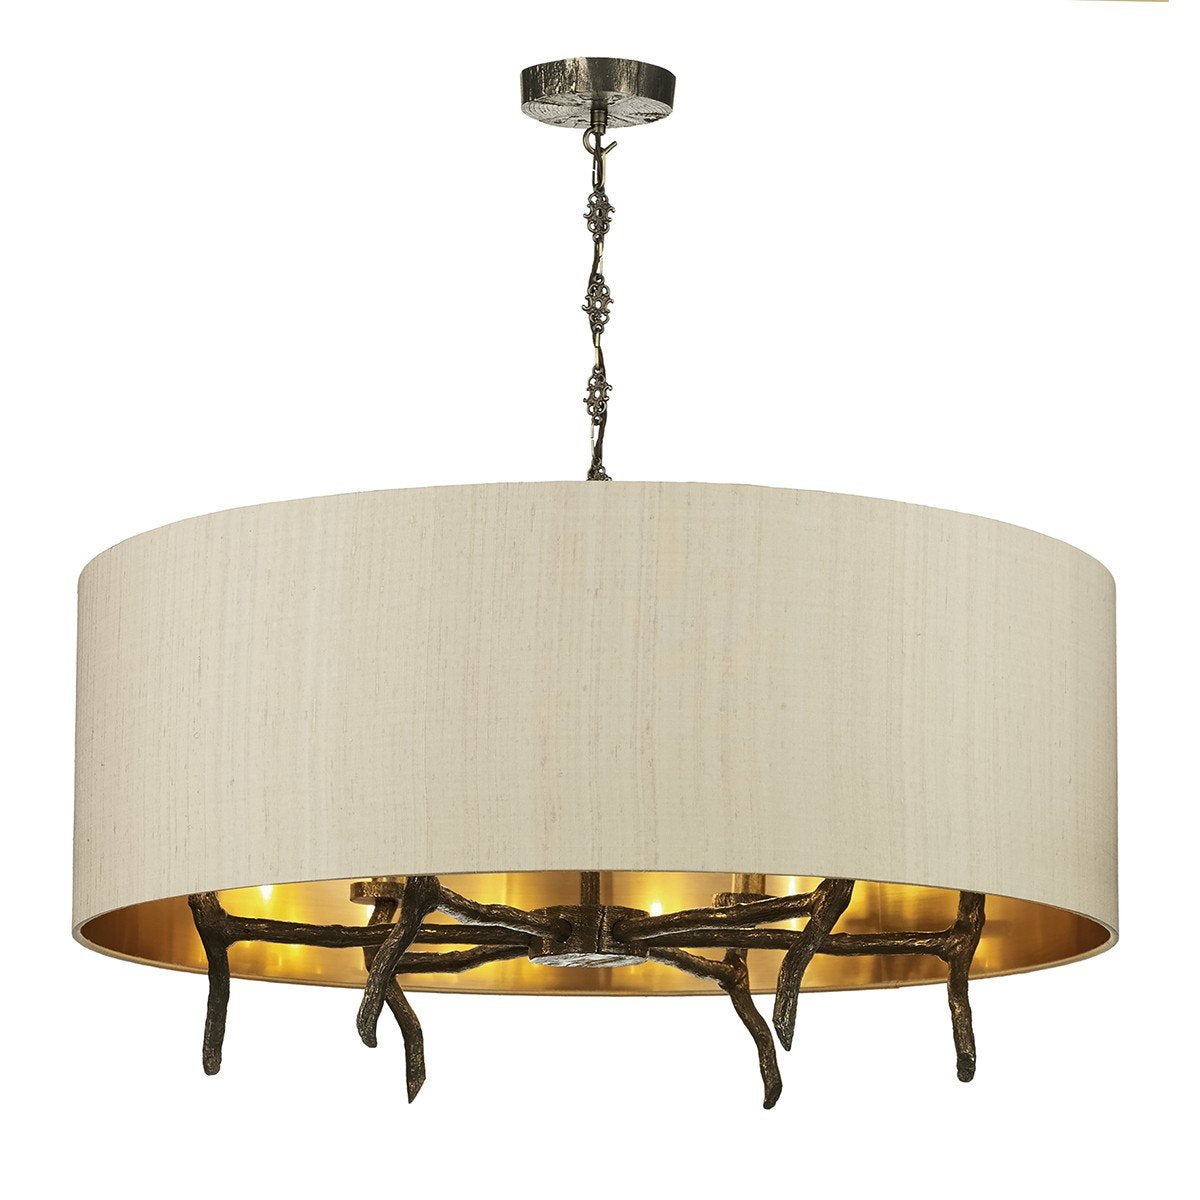 Joshua Six Lamp Ceiling Light With Shade